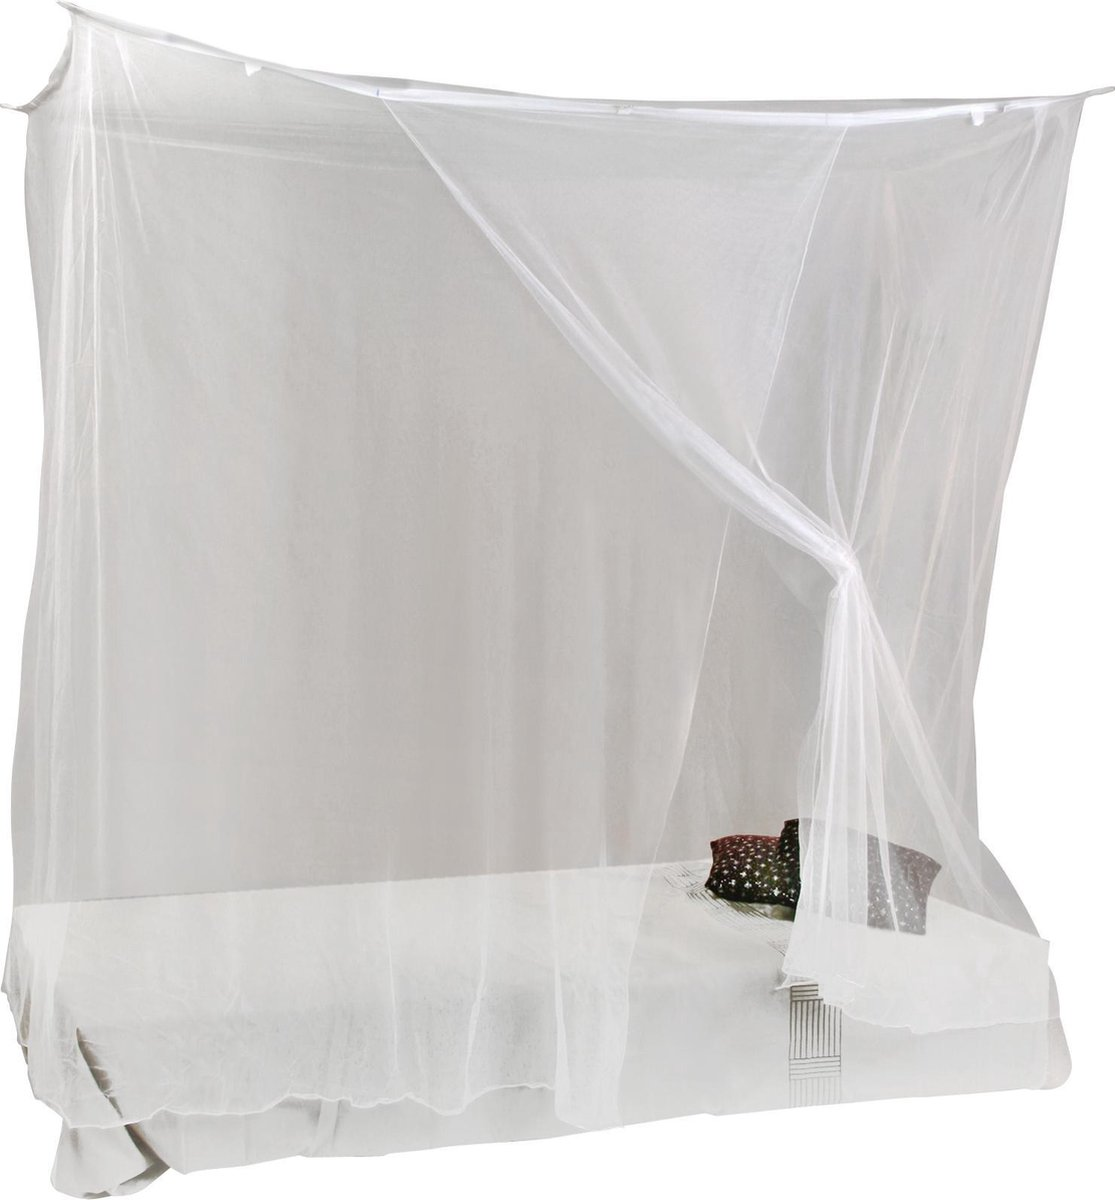 Budget-line 'SOLITAIRE' klamboe-polyester-1pers - H200xB100xL200-wit